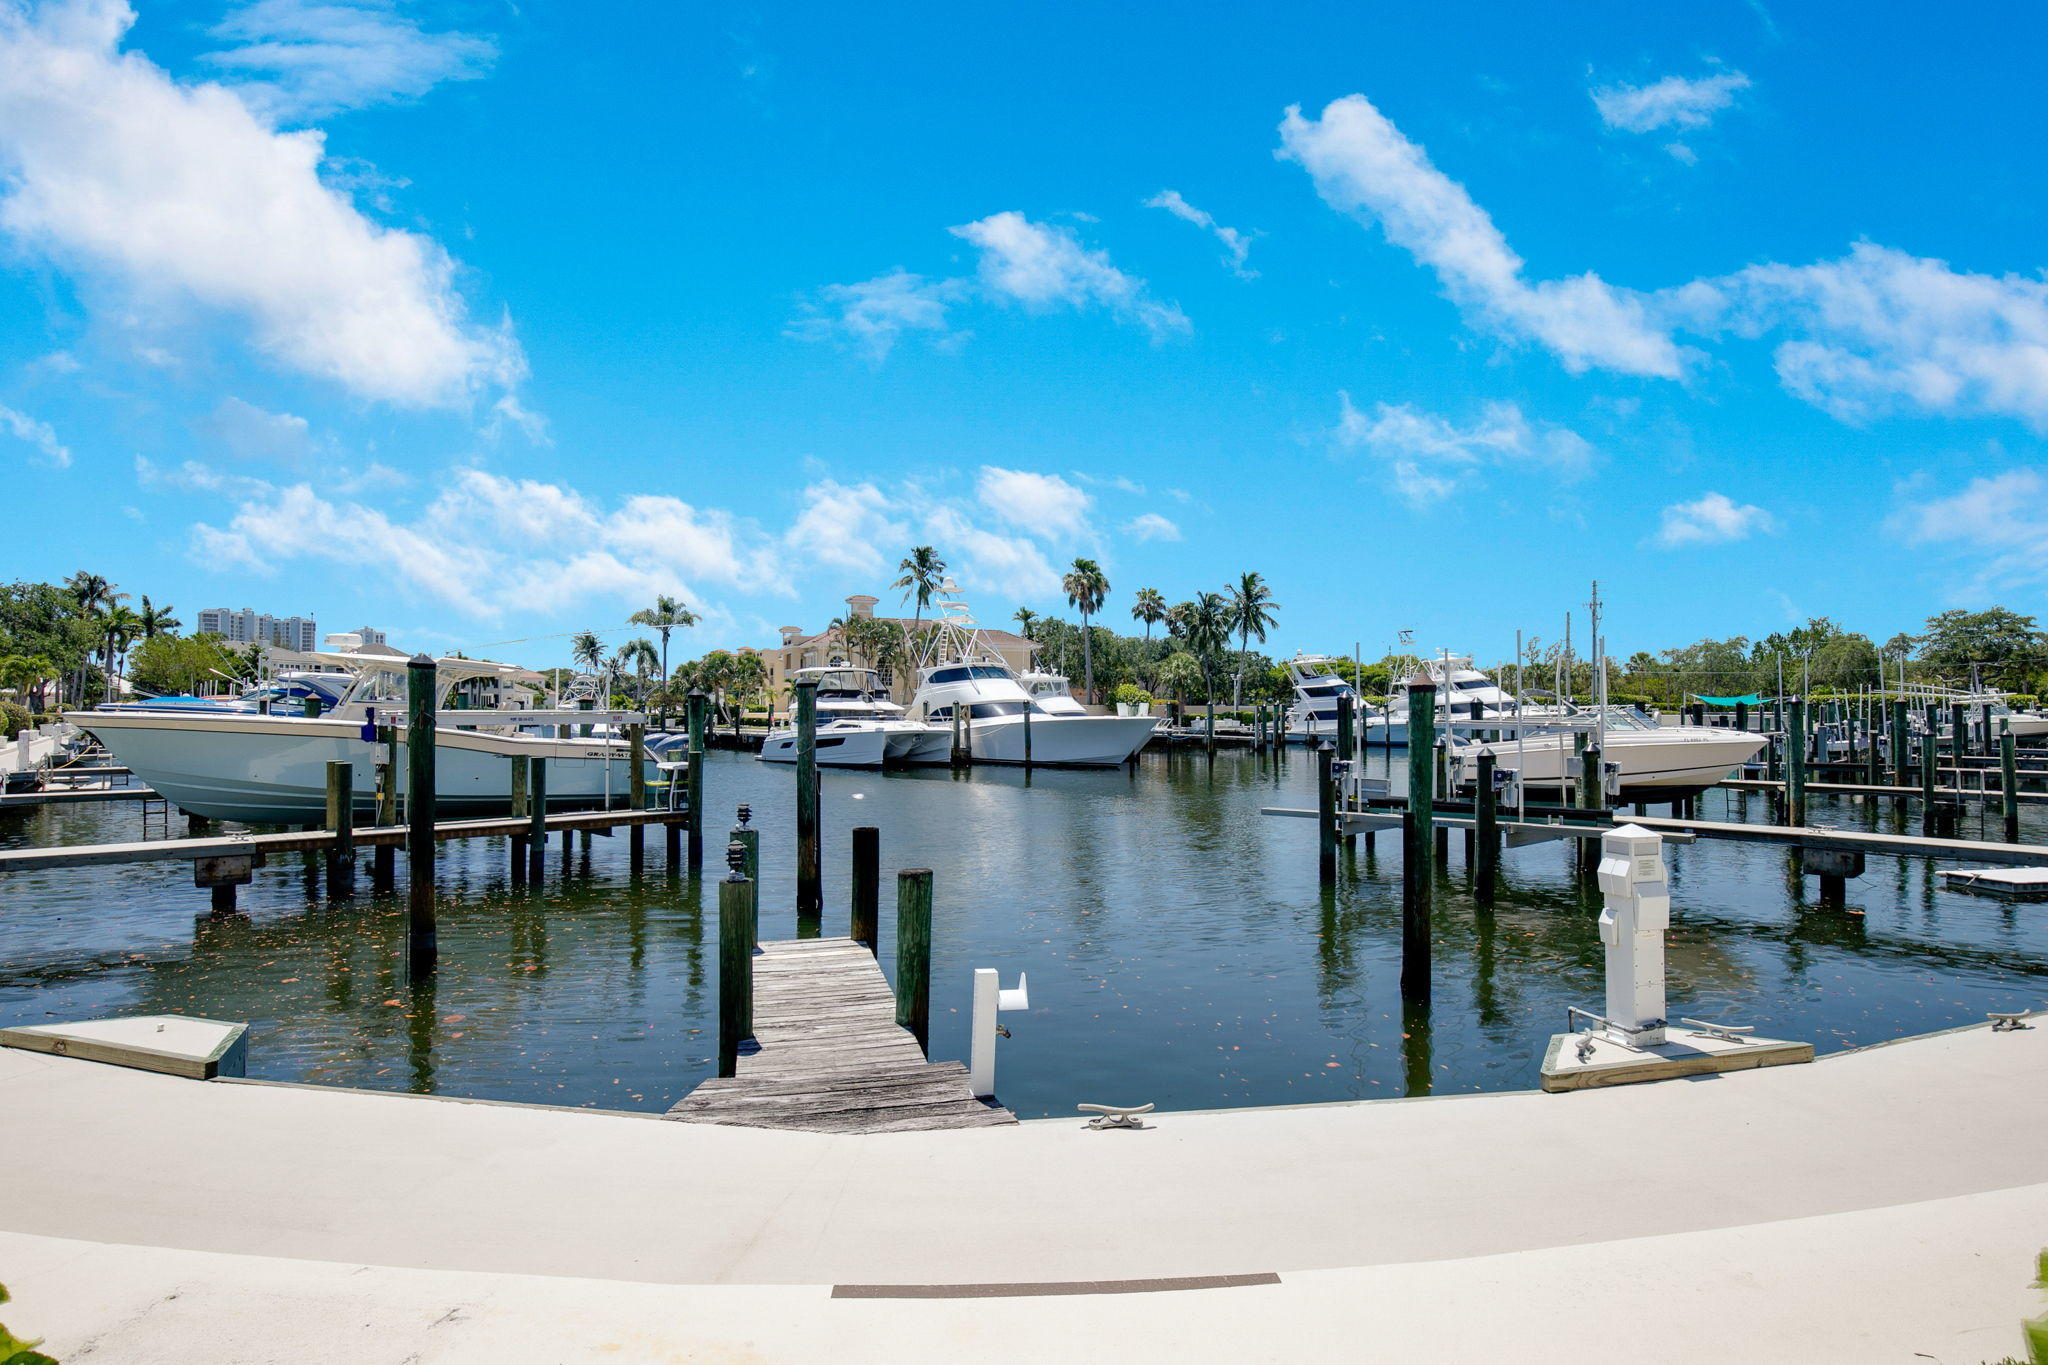 1464  Harbour Point Drive  For Sale 10720126, FL